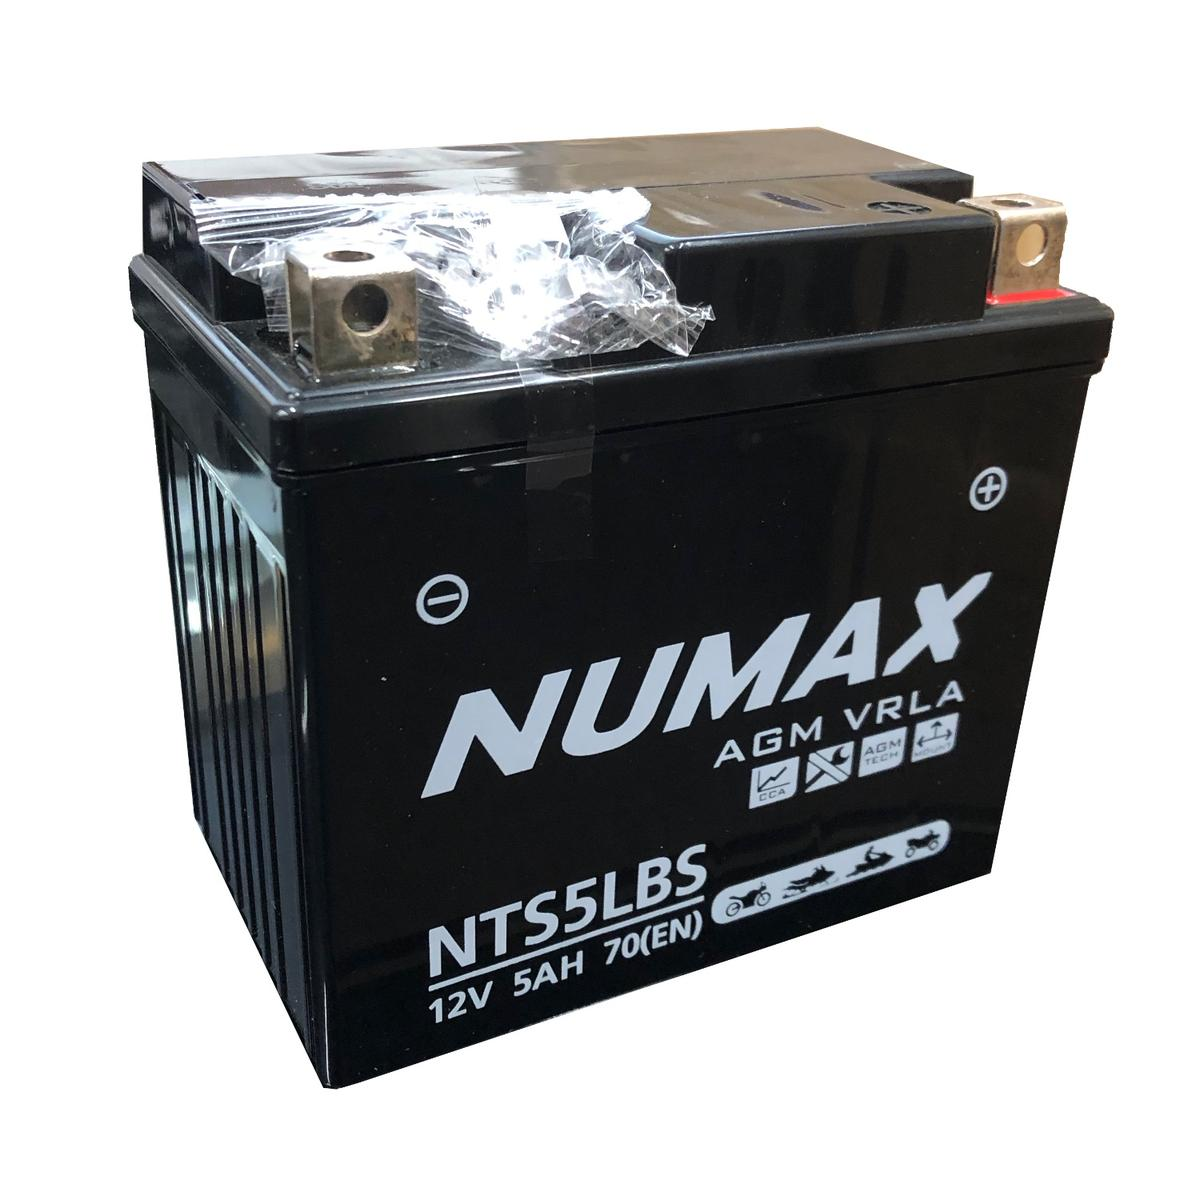 Numax 12v NTS5LBS Motorbike Bike Battery KYMCO 50cc Top boy YT5L-4